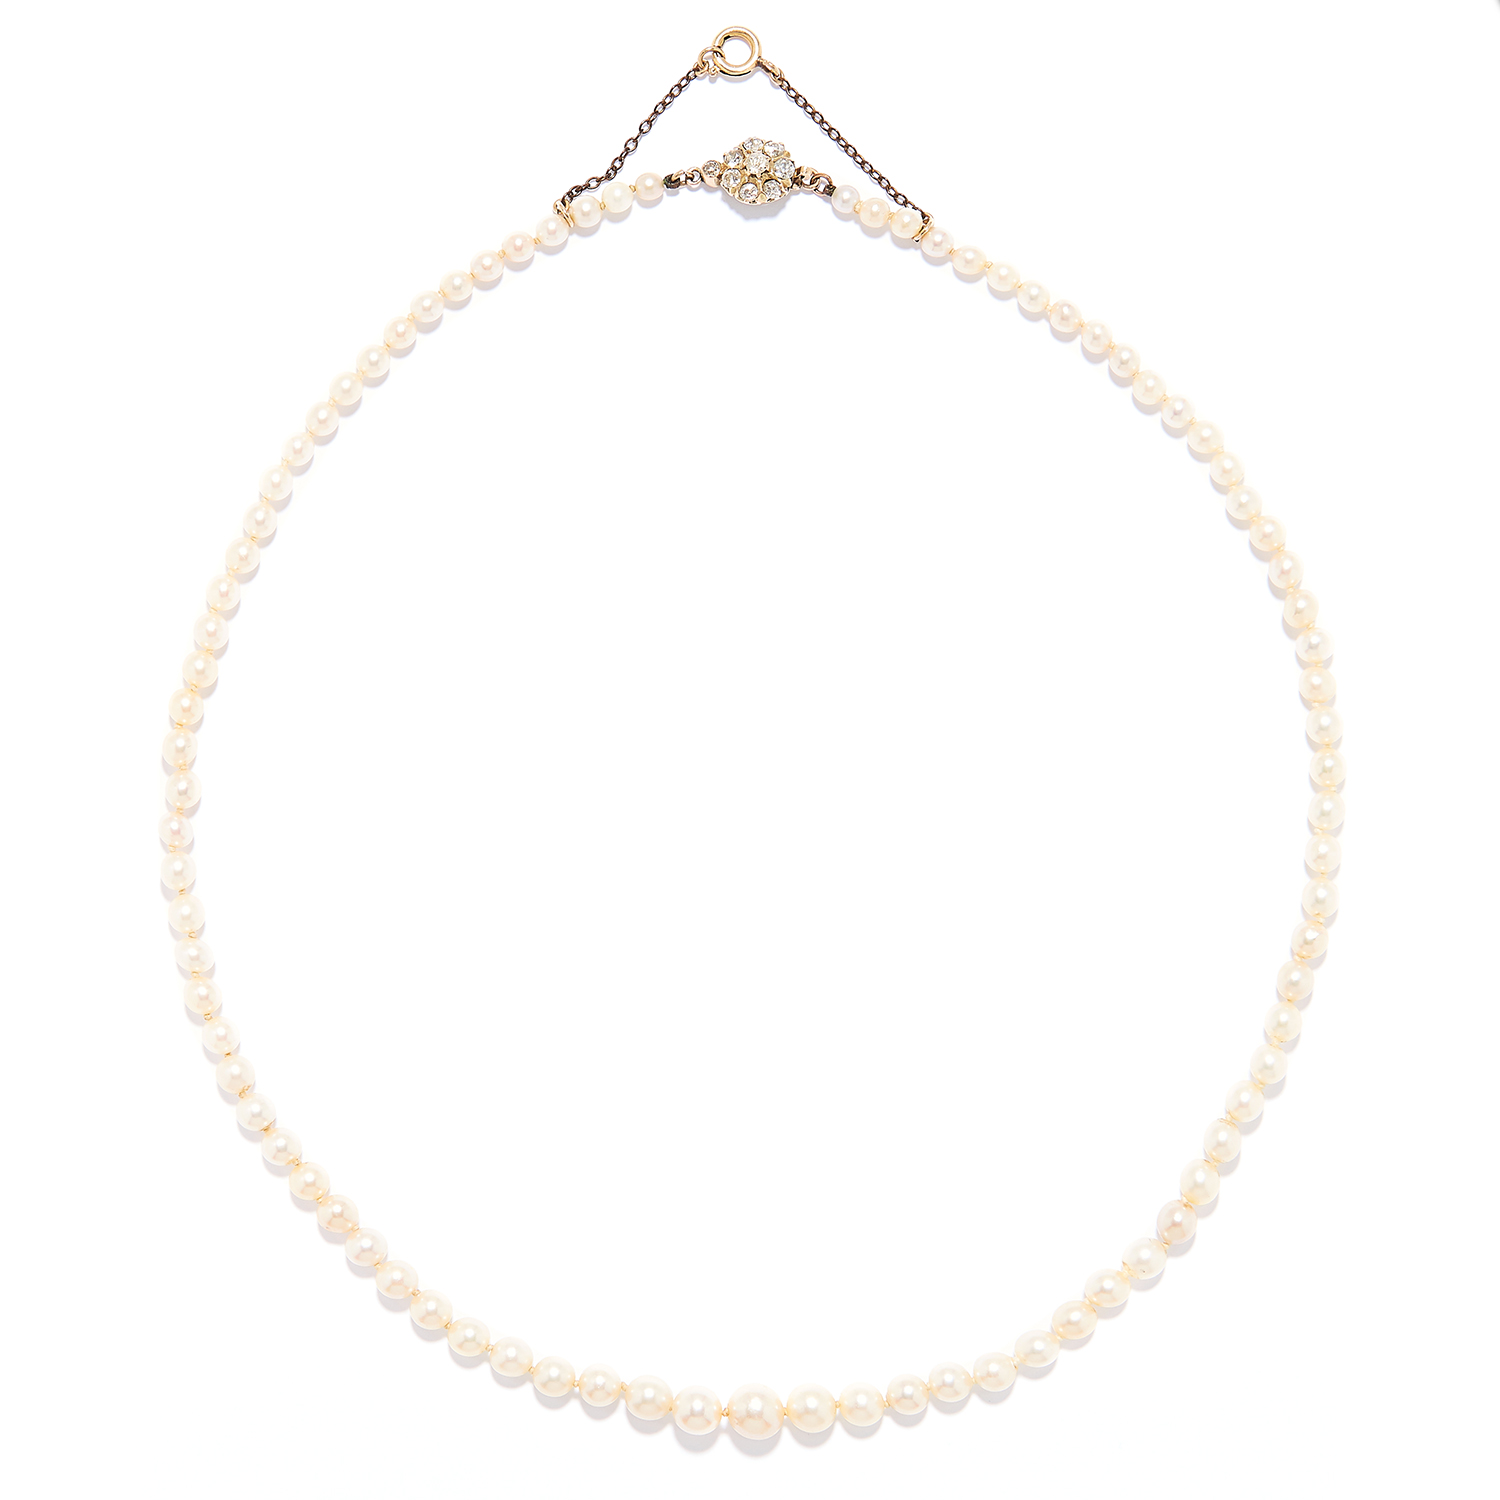 Los 58 - ANTIQUE PEARL AND DIAMOND NECKLACE in yellow gold, comprising of a single strand of pearls with